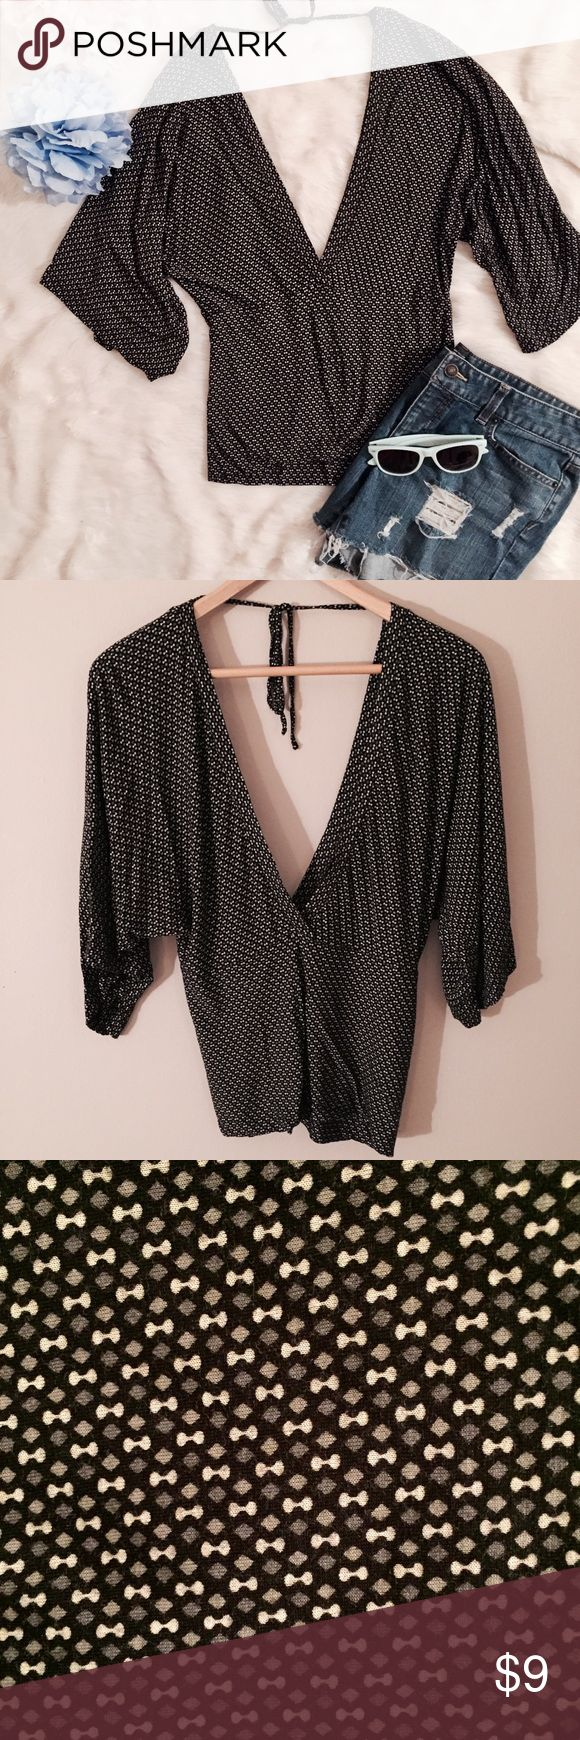 Batwing Black & White Top Mini bow print black and white top with batwing sleeves. Ties in back, can be worn as v neck or off the shoulder. EUC Tops Blouses